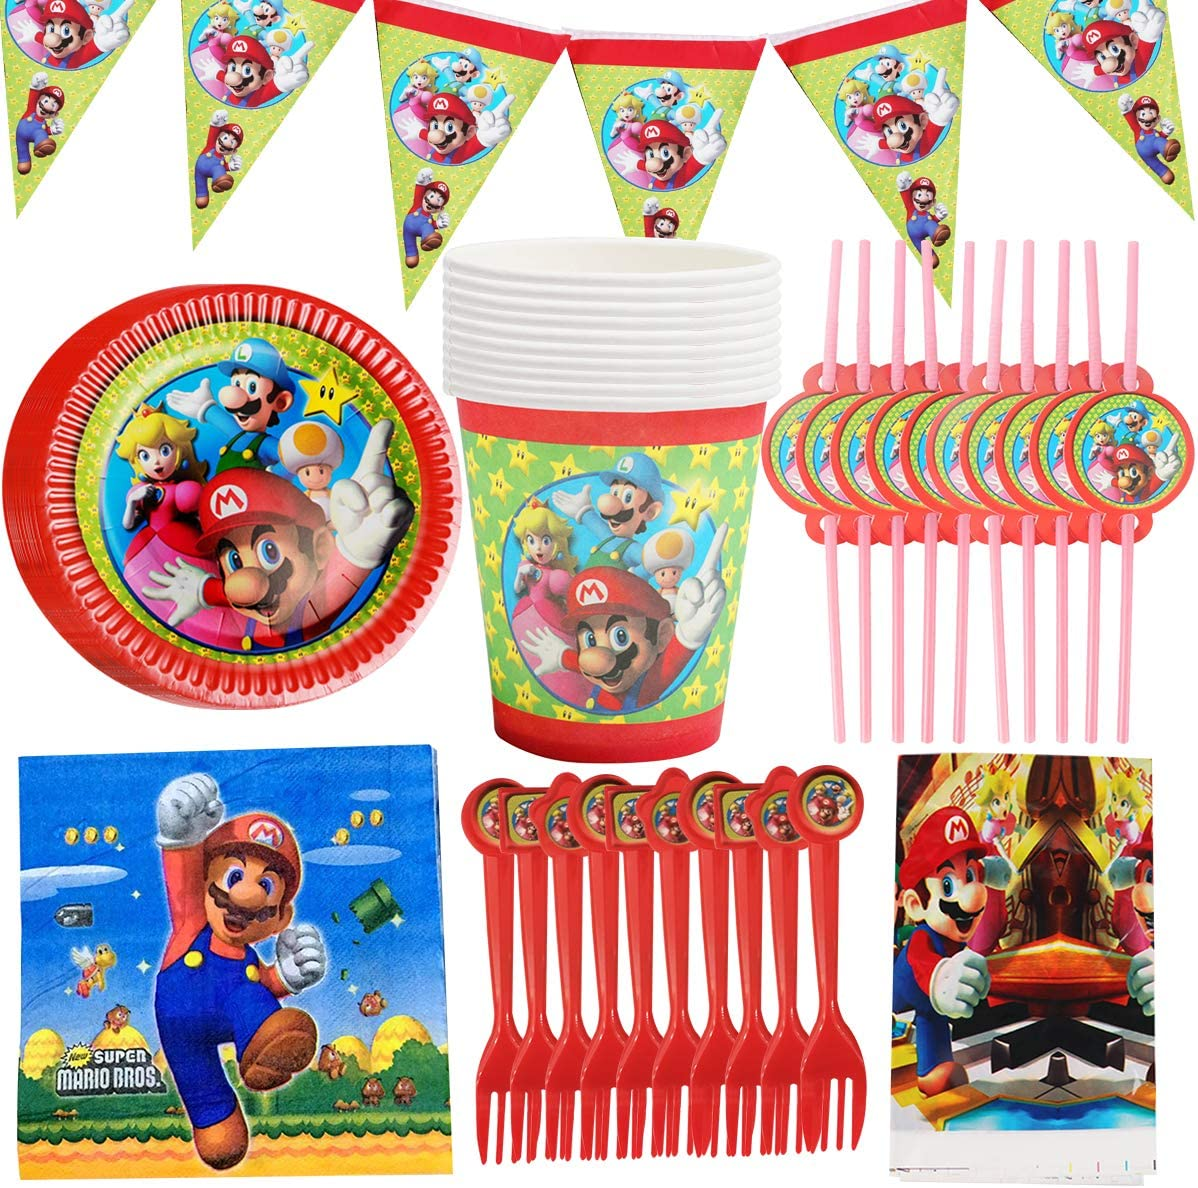 WENTS Gebutstag Party Set 62-teiliges Party-Set Super Mario Teller Becher Servietten Geburtstag Dekoration Set Happy Birthday Deko Bunte Partykette Girlande Banner